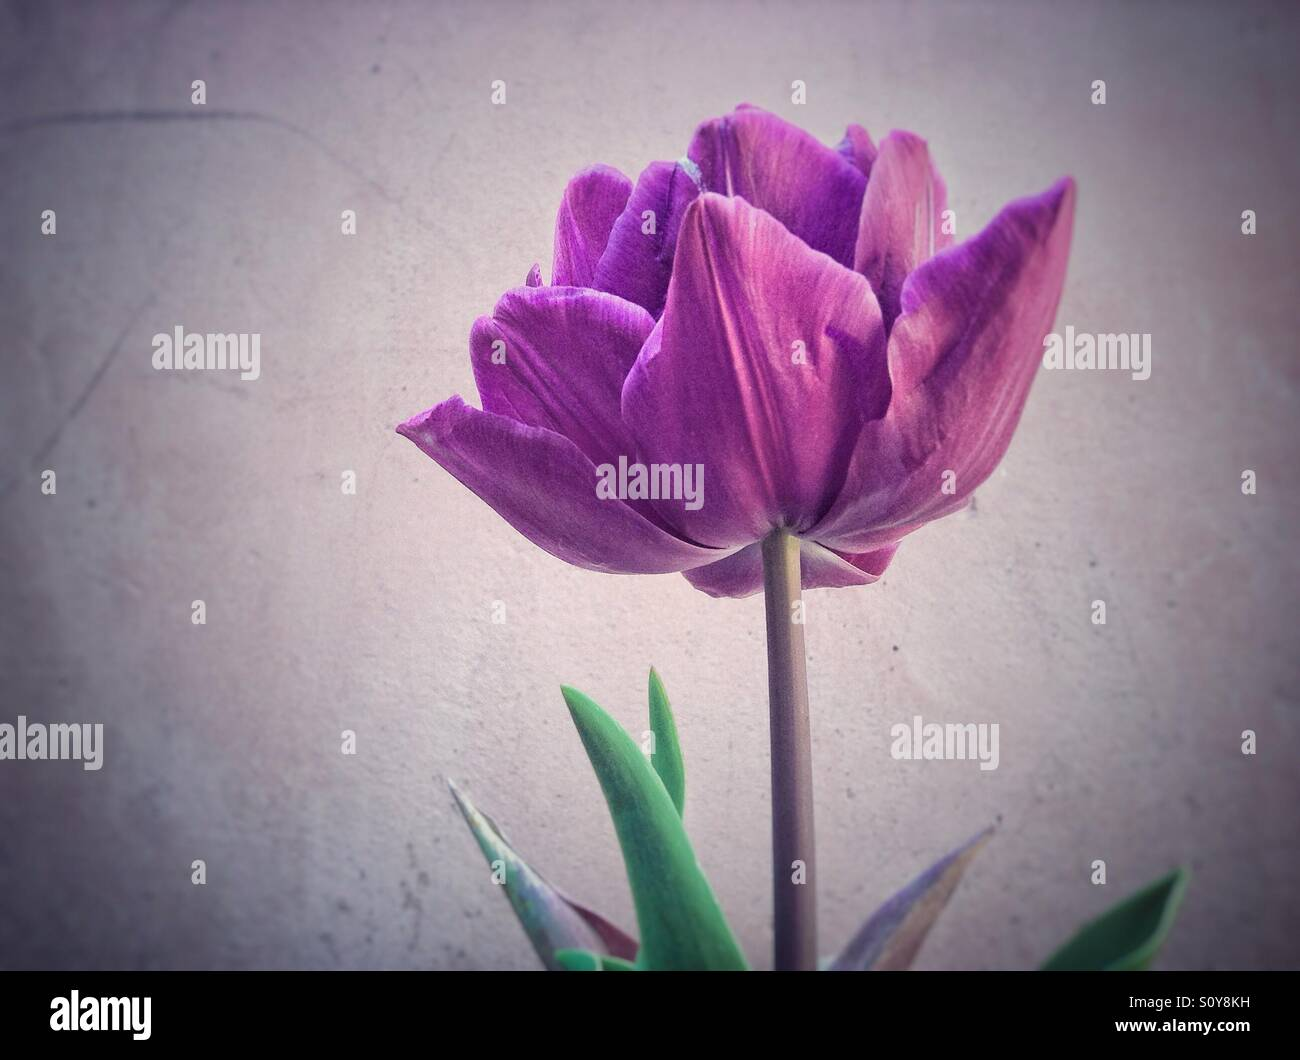 Colorful tulip flowerStock Photo